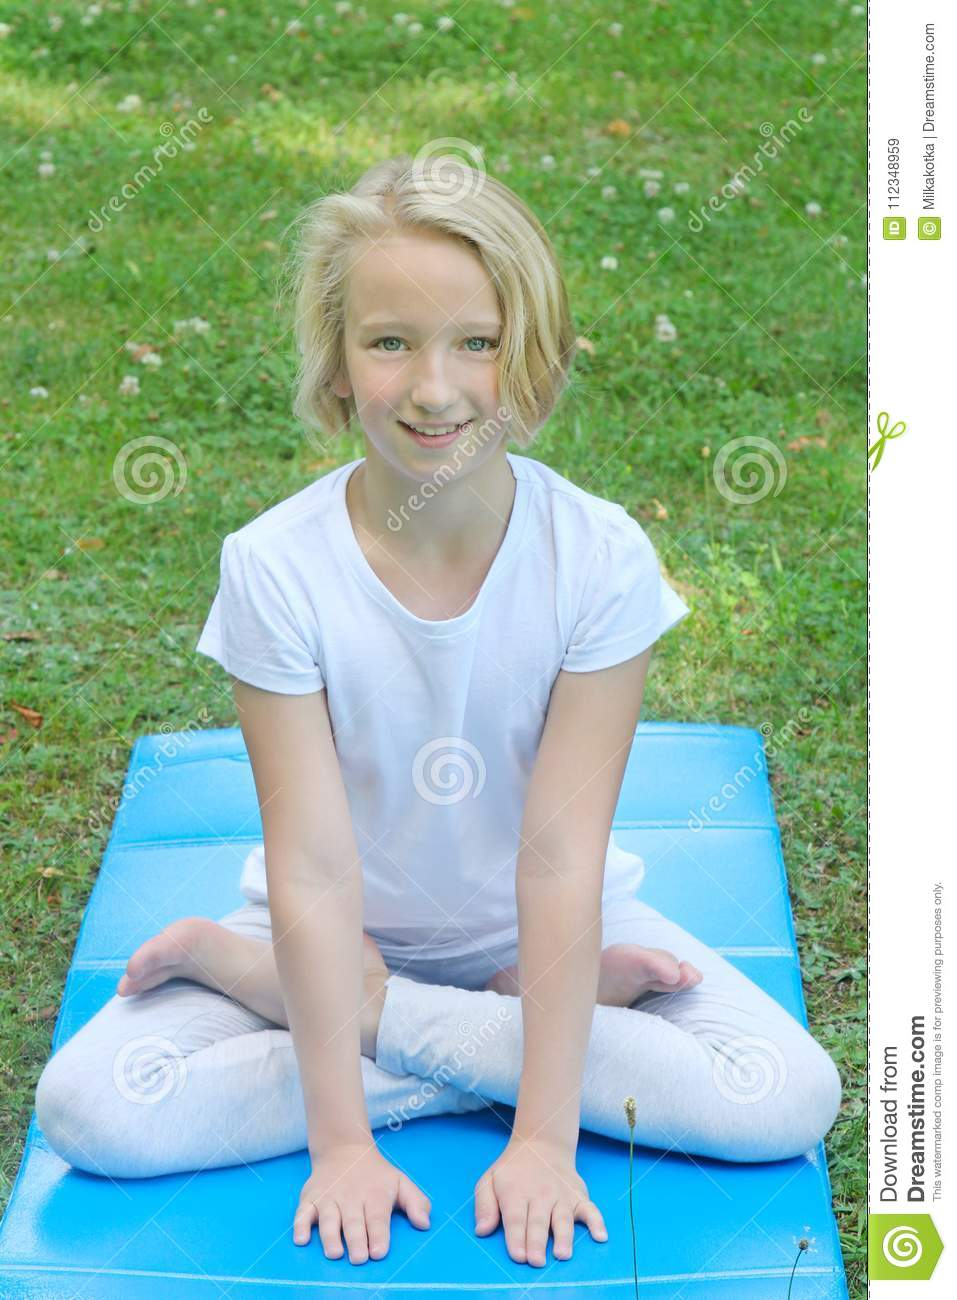 Beautiful Blonde Preteen Girl Practicing Yoga On A Mat In